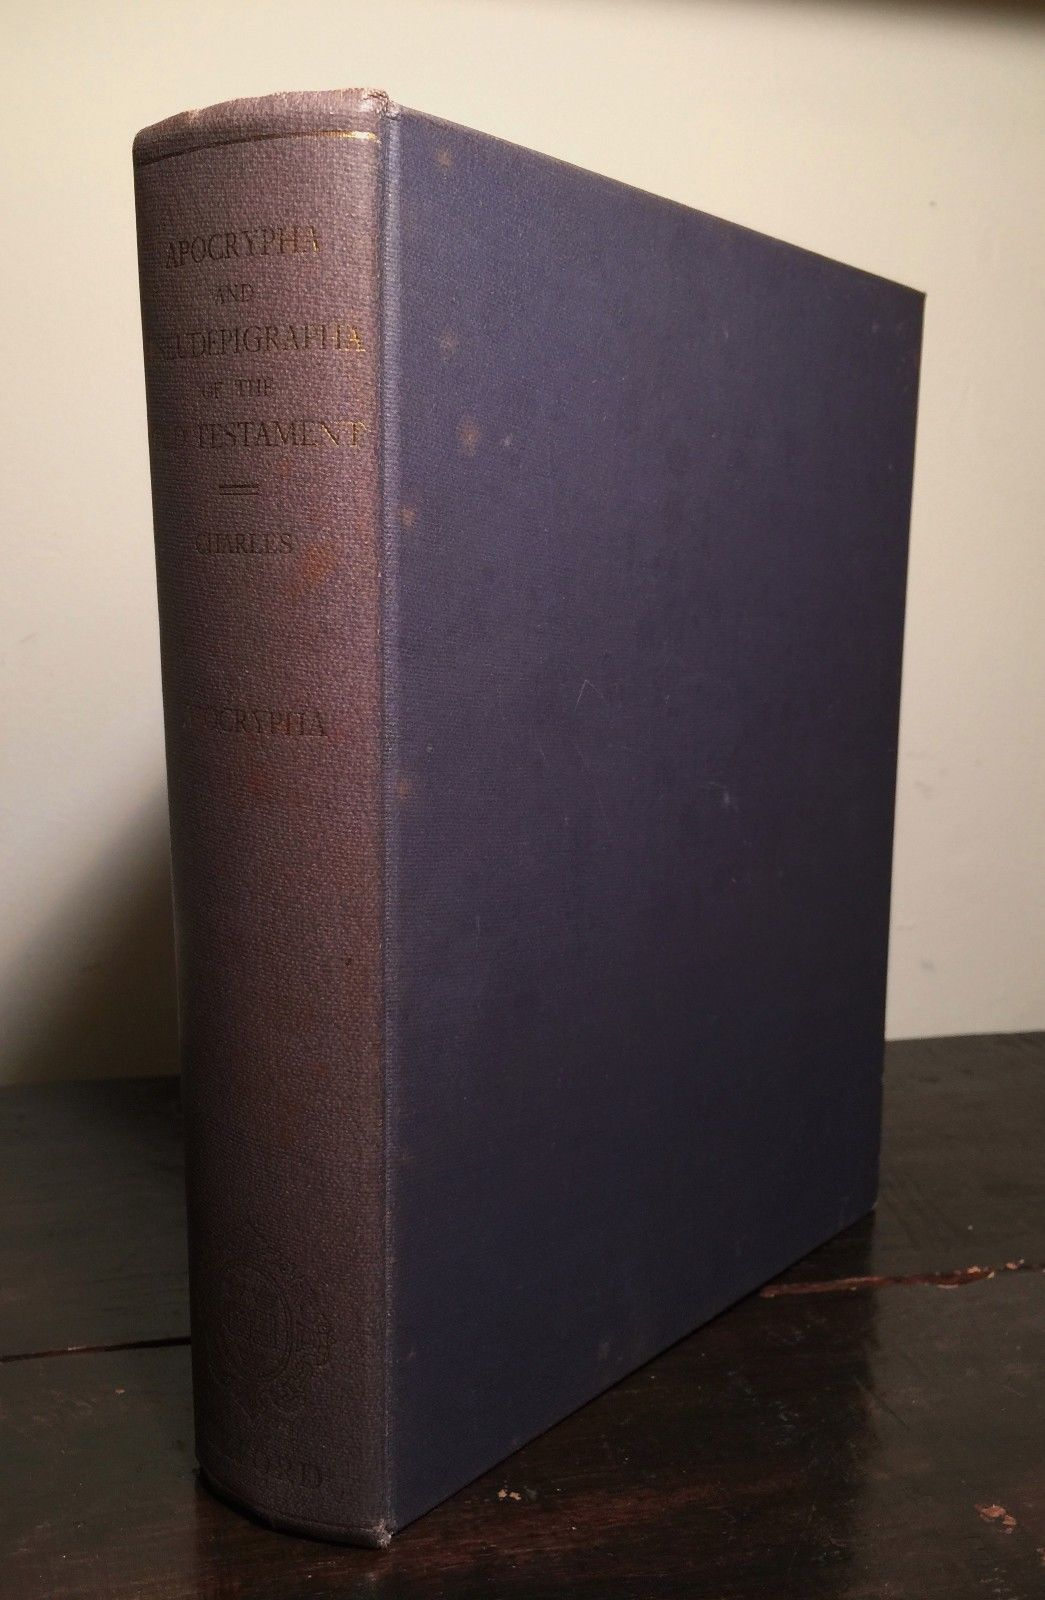 APOCRYPHA AND PSEUDEPIGRAPHA OF THE OLD TESTAMENT Vol I, RH Charles 1st Ed 1963